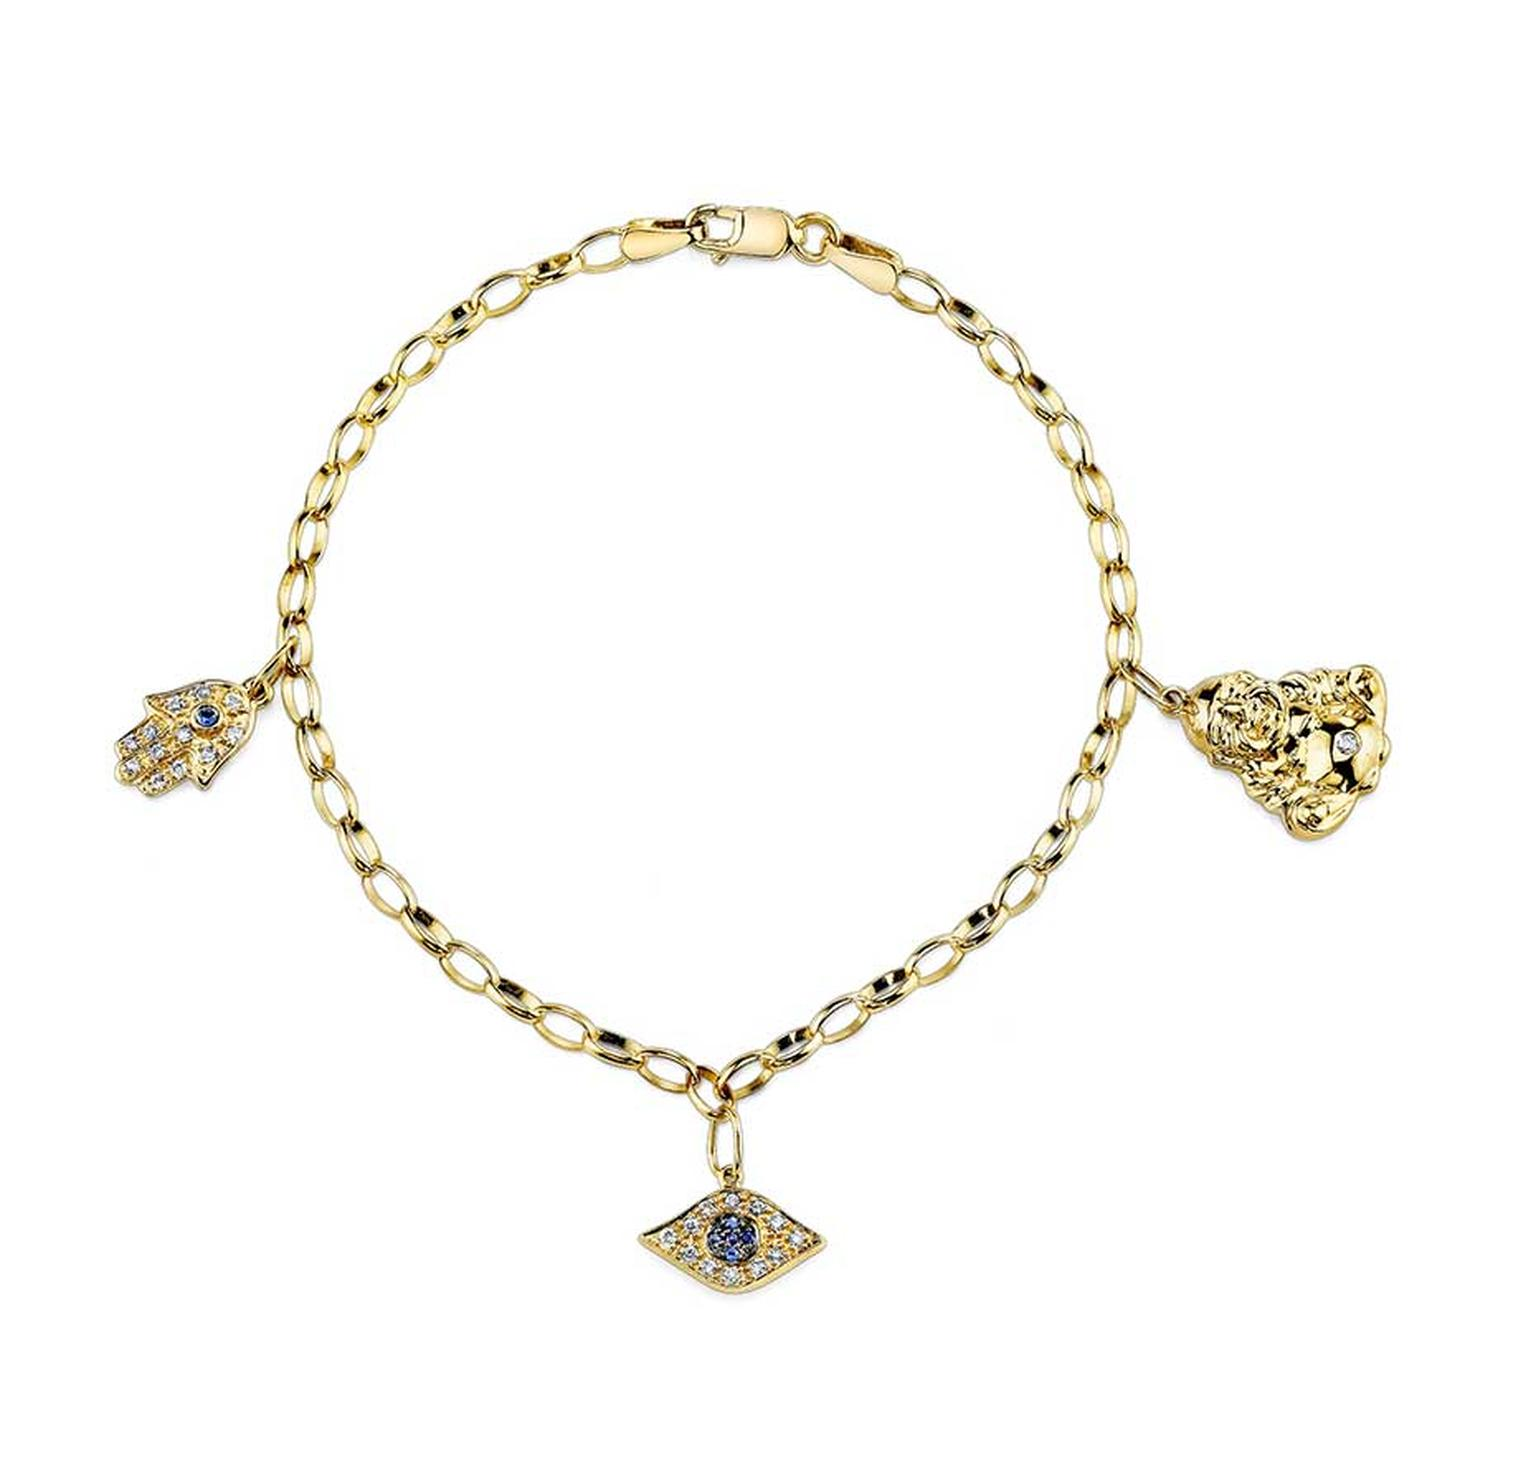 Sydney Evan Lucky Charm bracelet in gold with diamonds and sapphires.